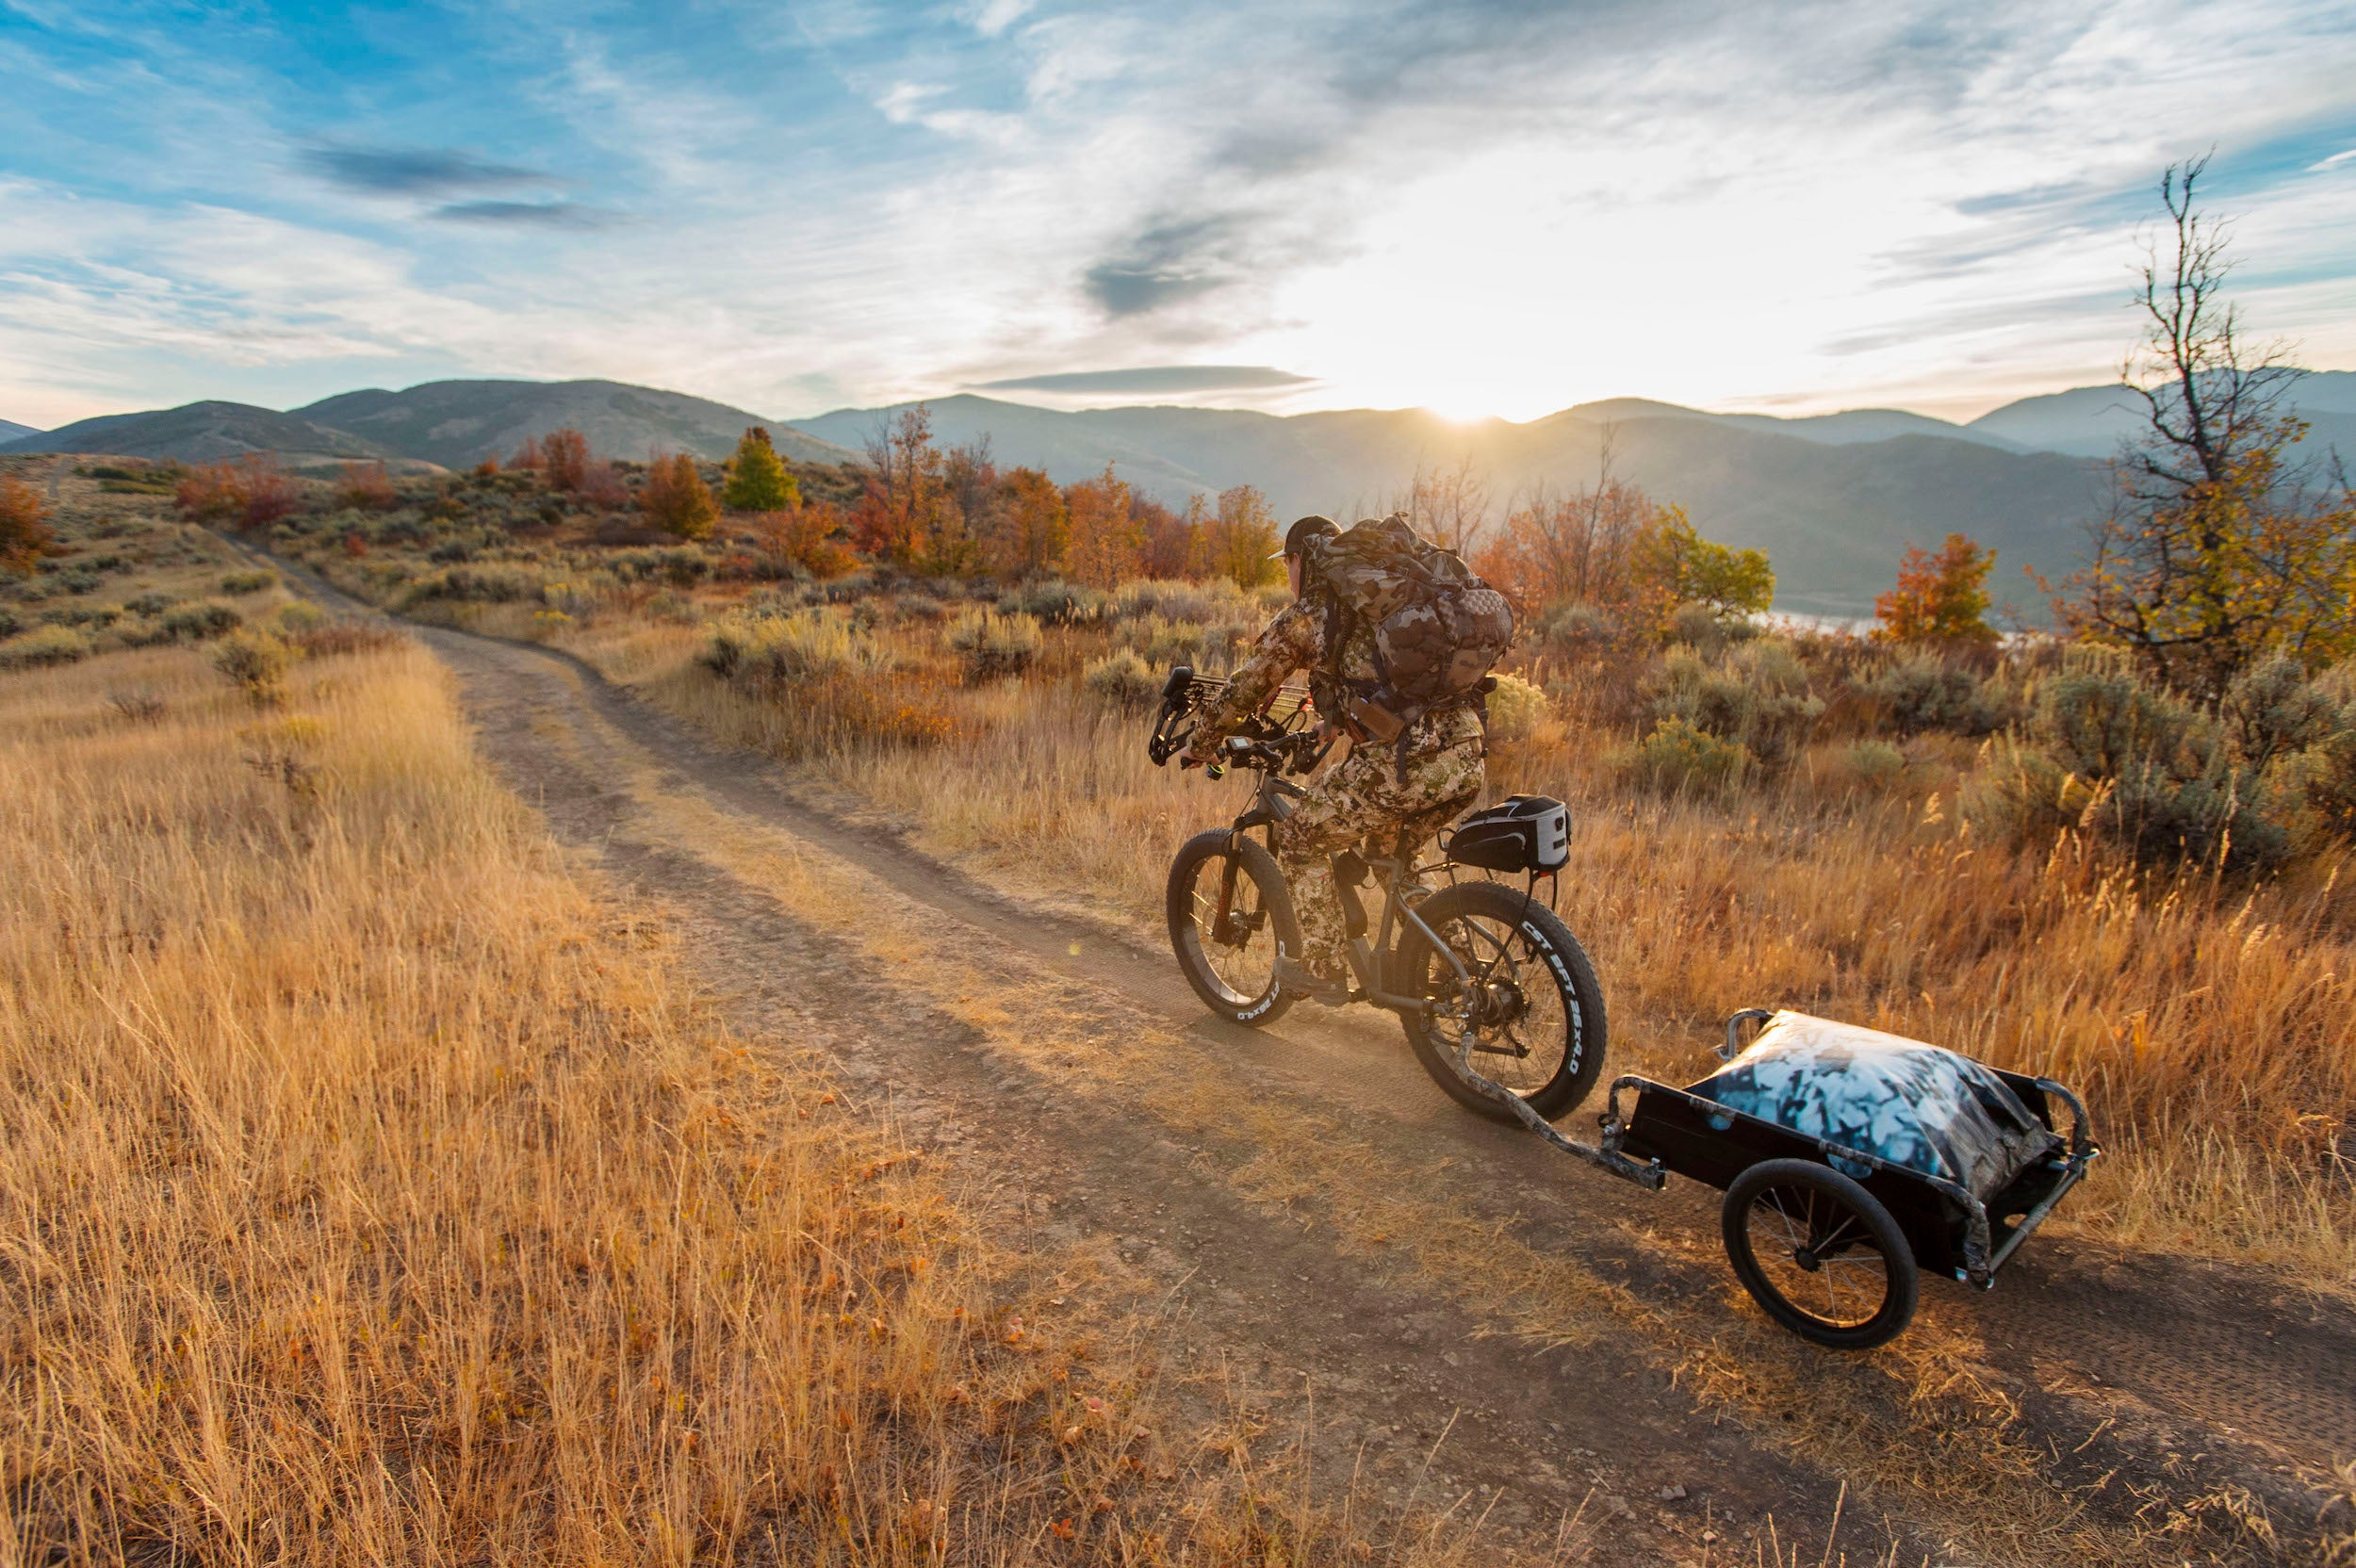 Biking down a dirt trail on the PWR dually AWD E-bike with Traction Control